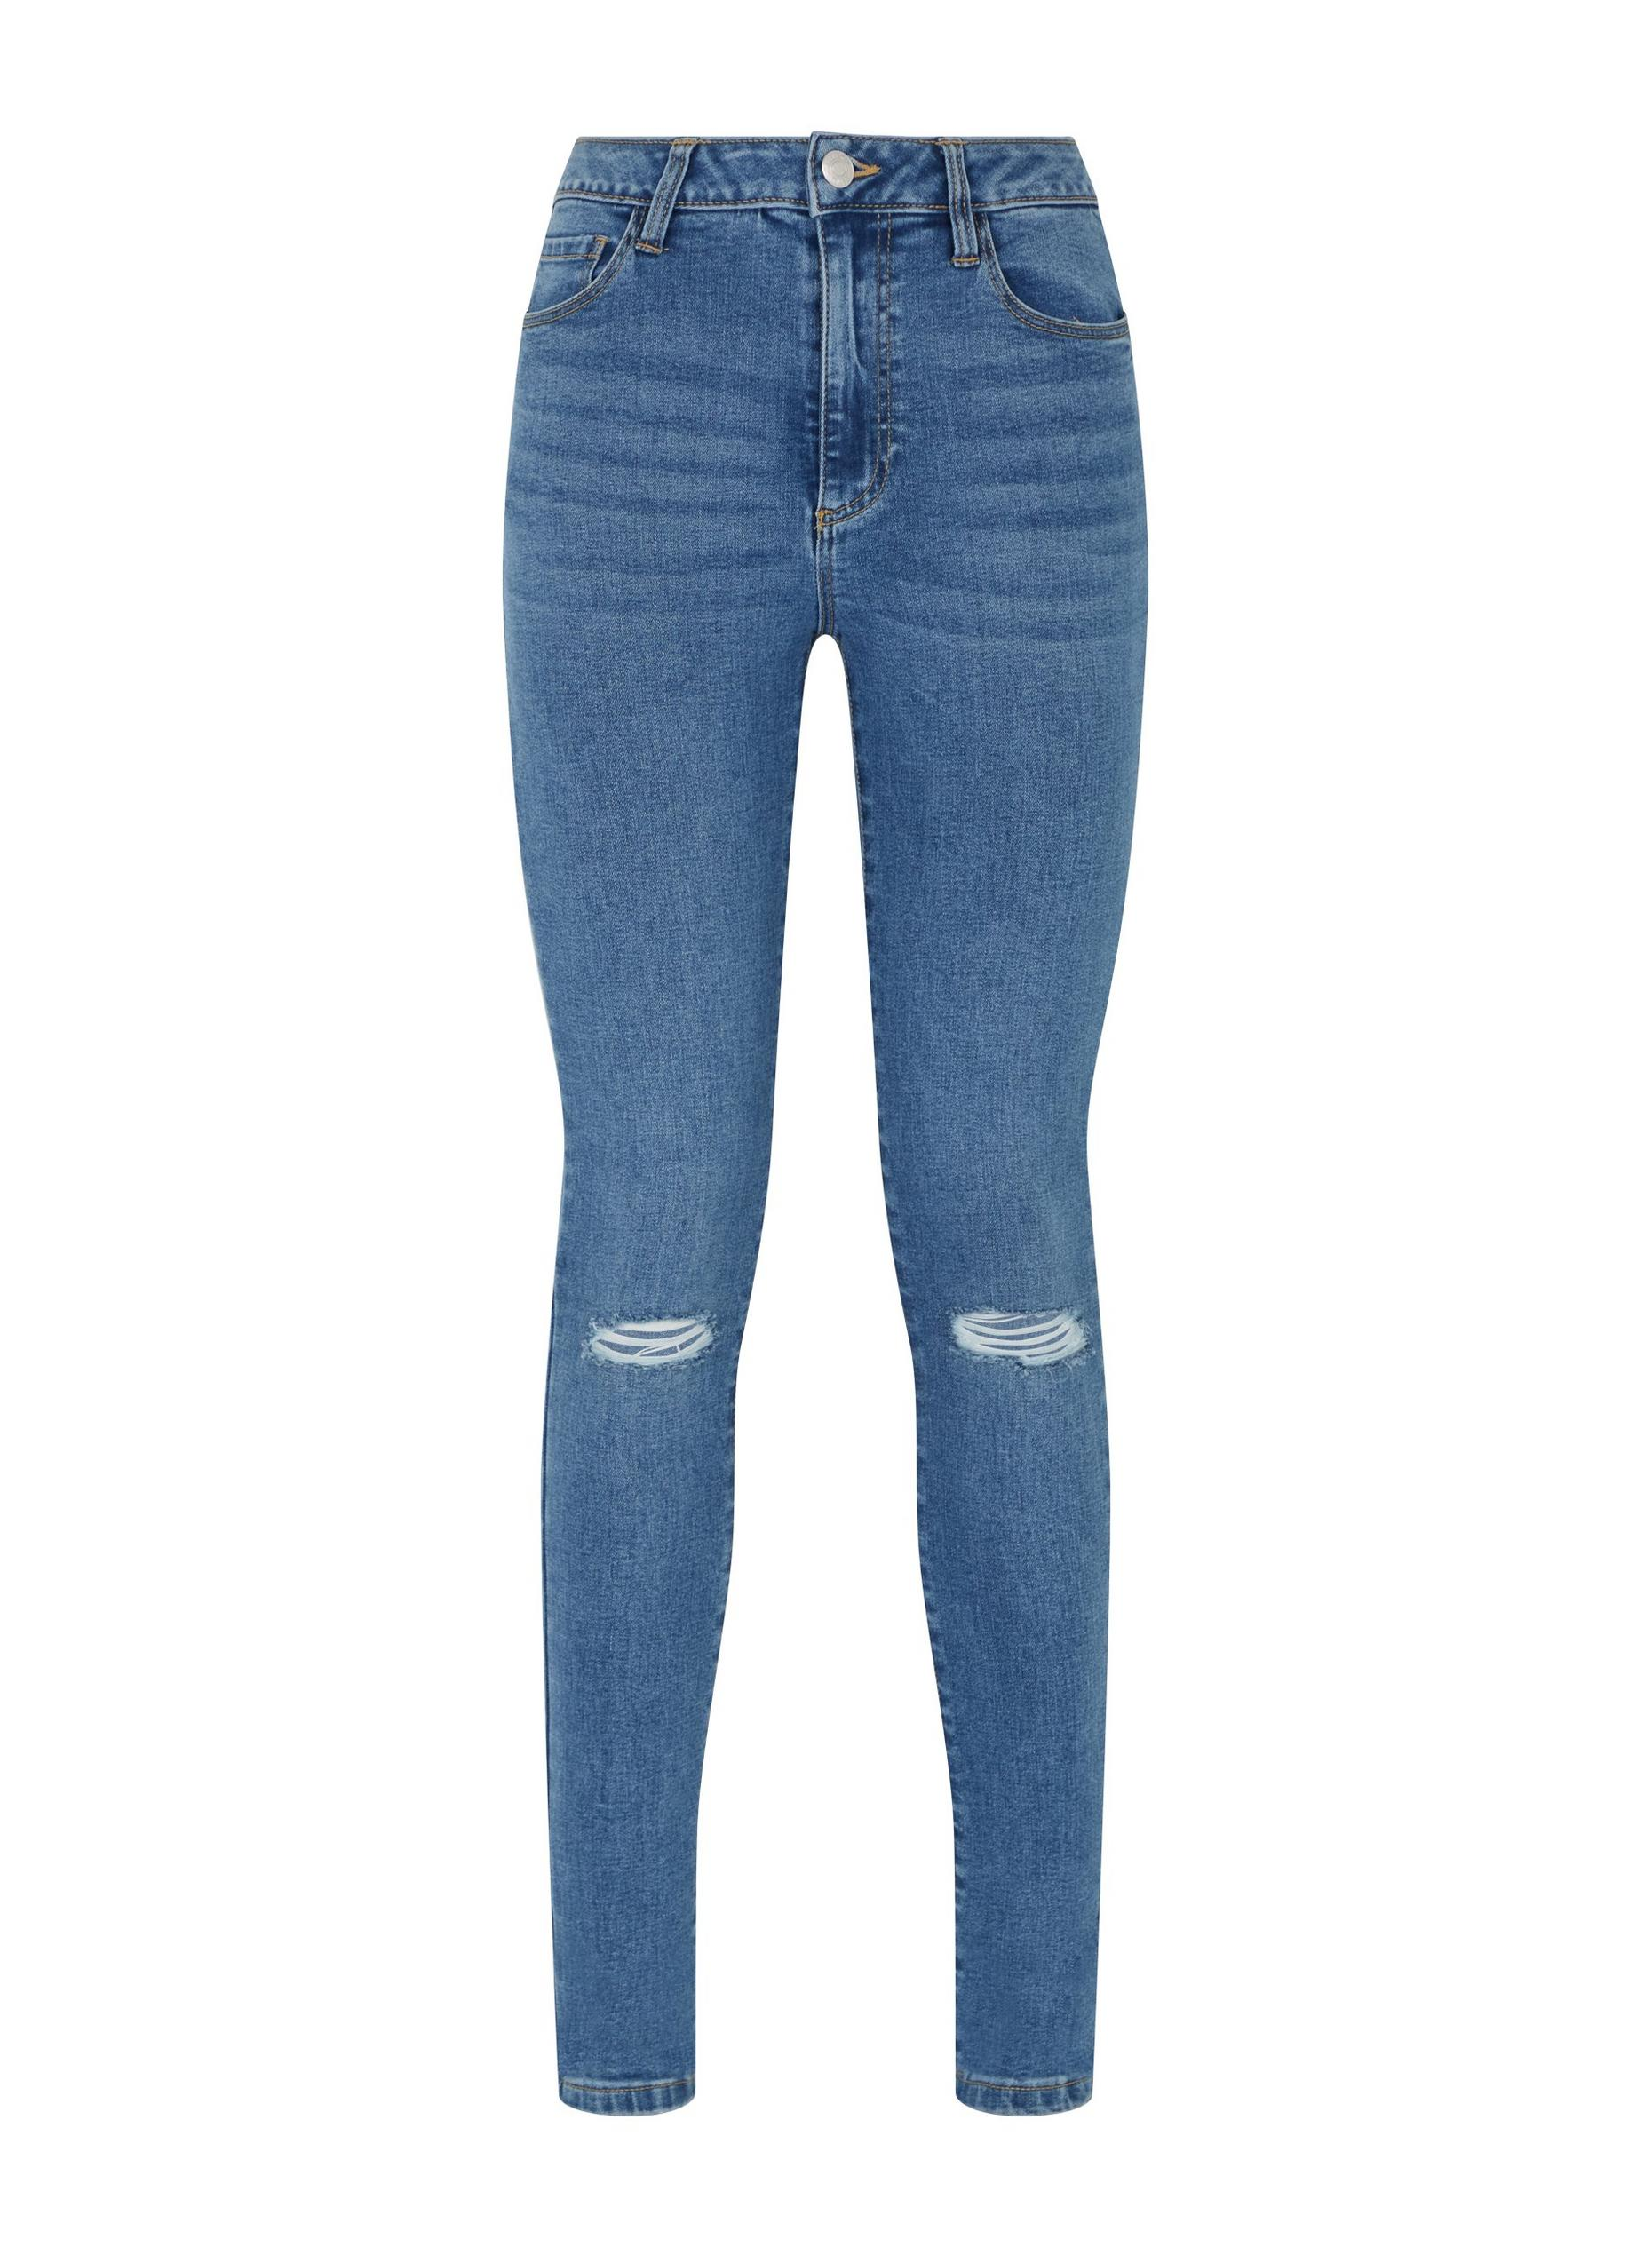 Tall Blue Light Wash Alex Denim Jeans